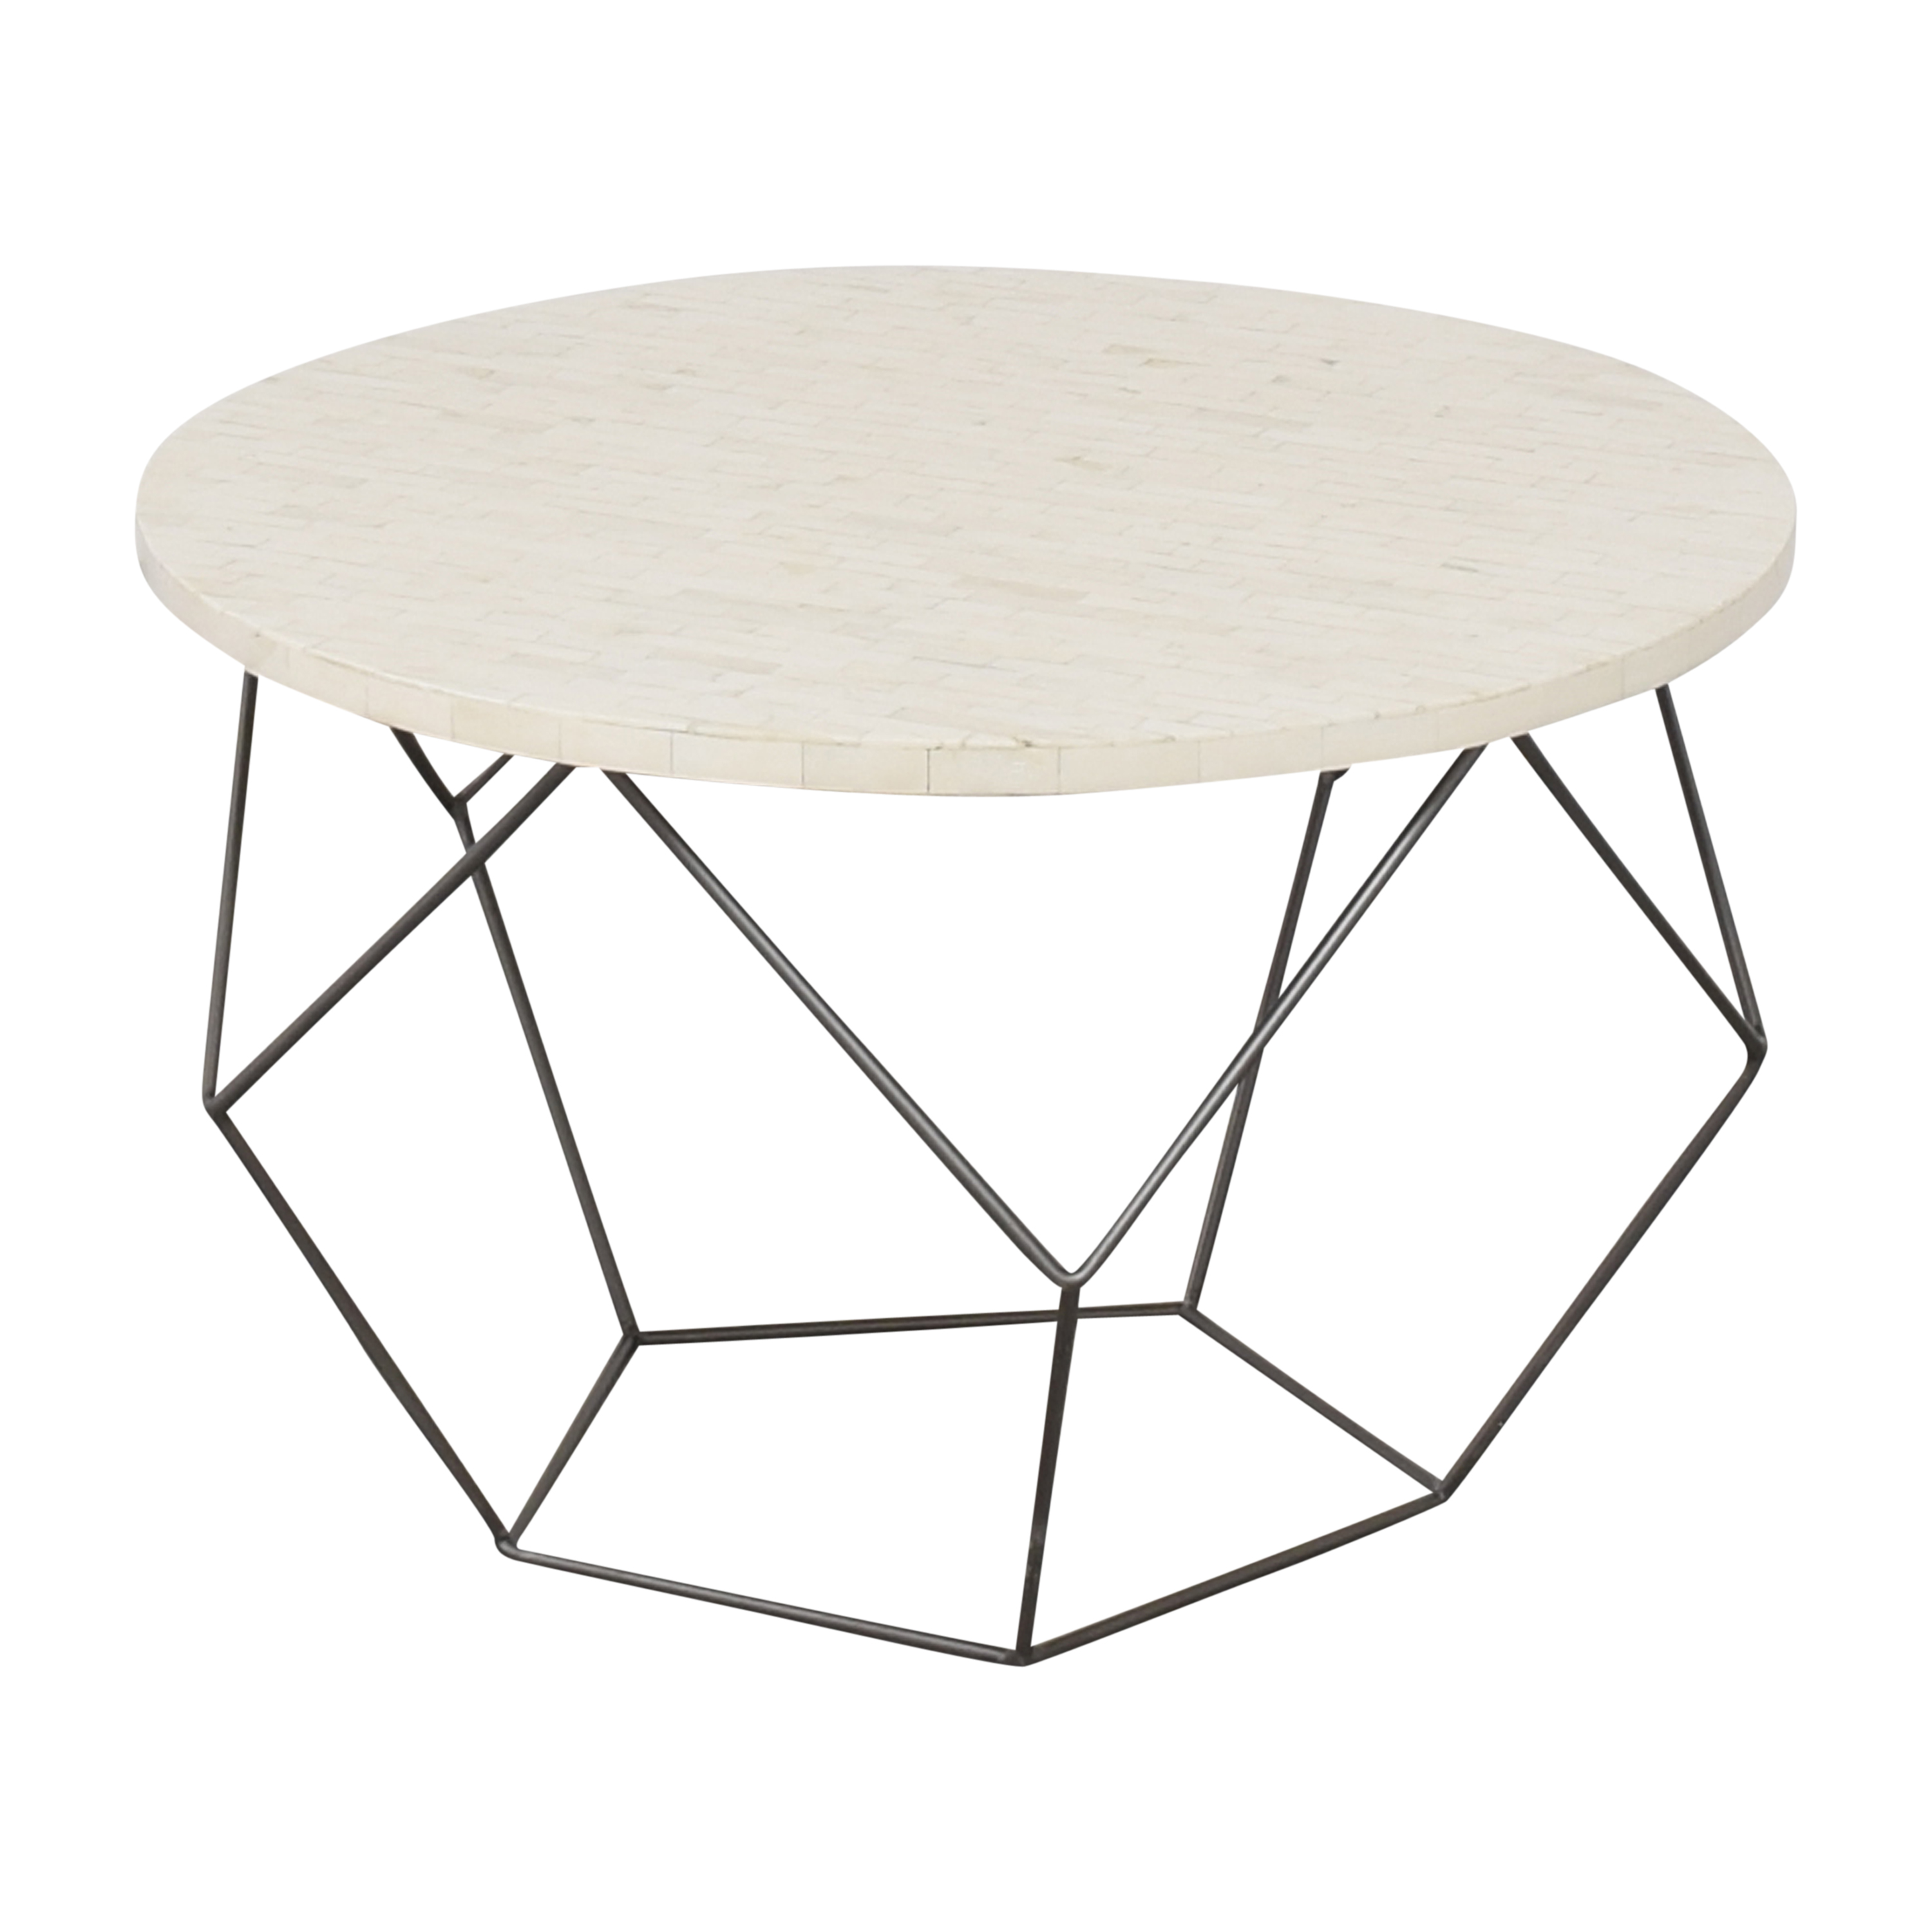 West Elm West Elm Origami Coffee Table coupon